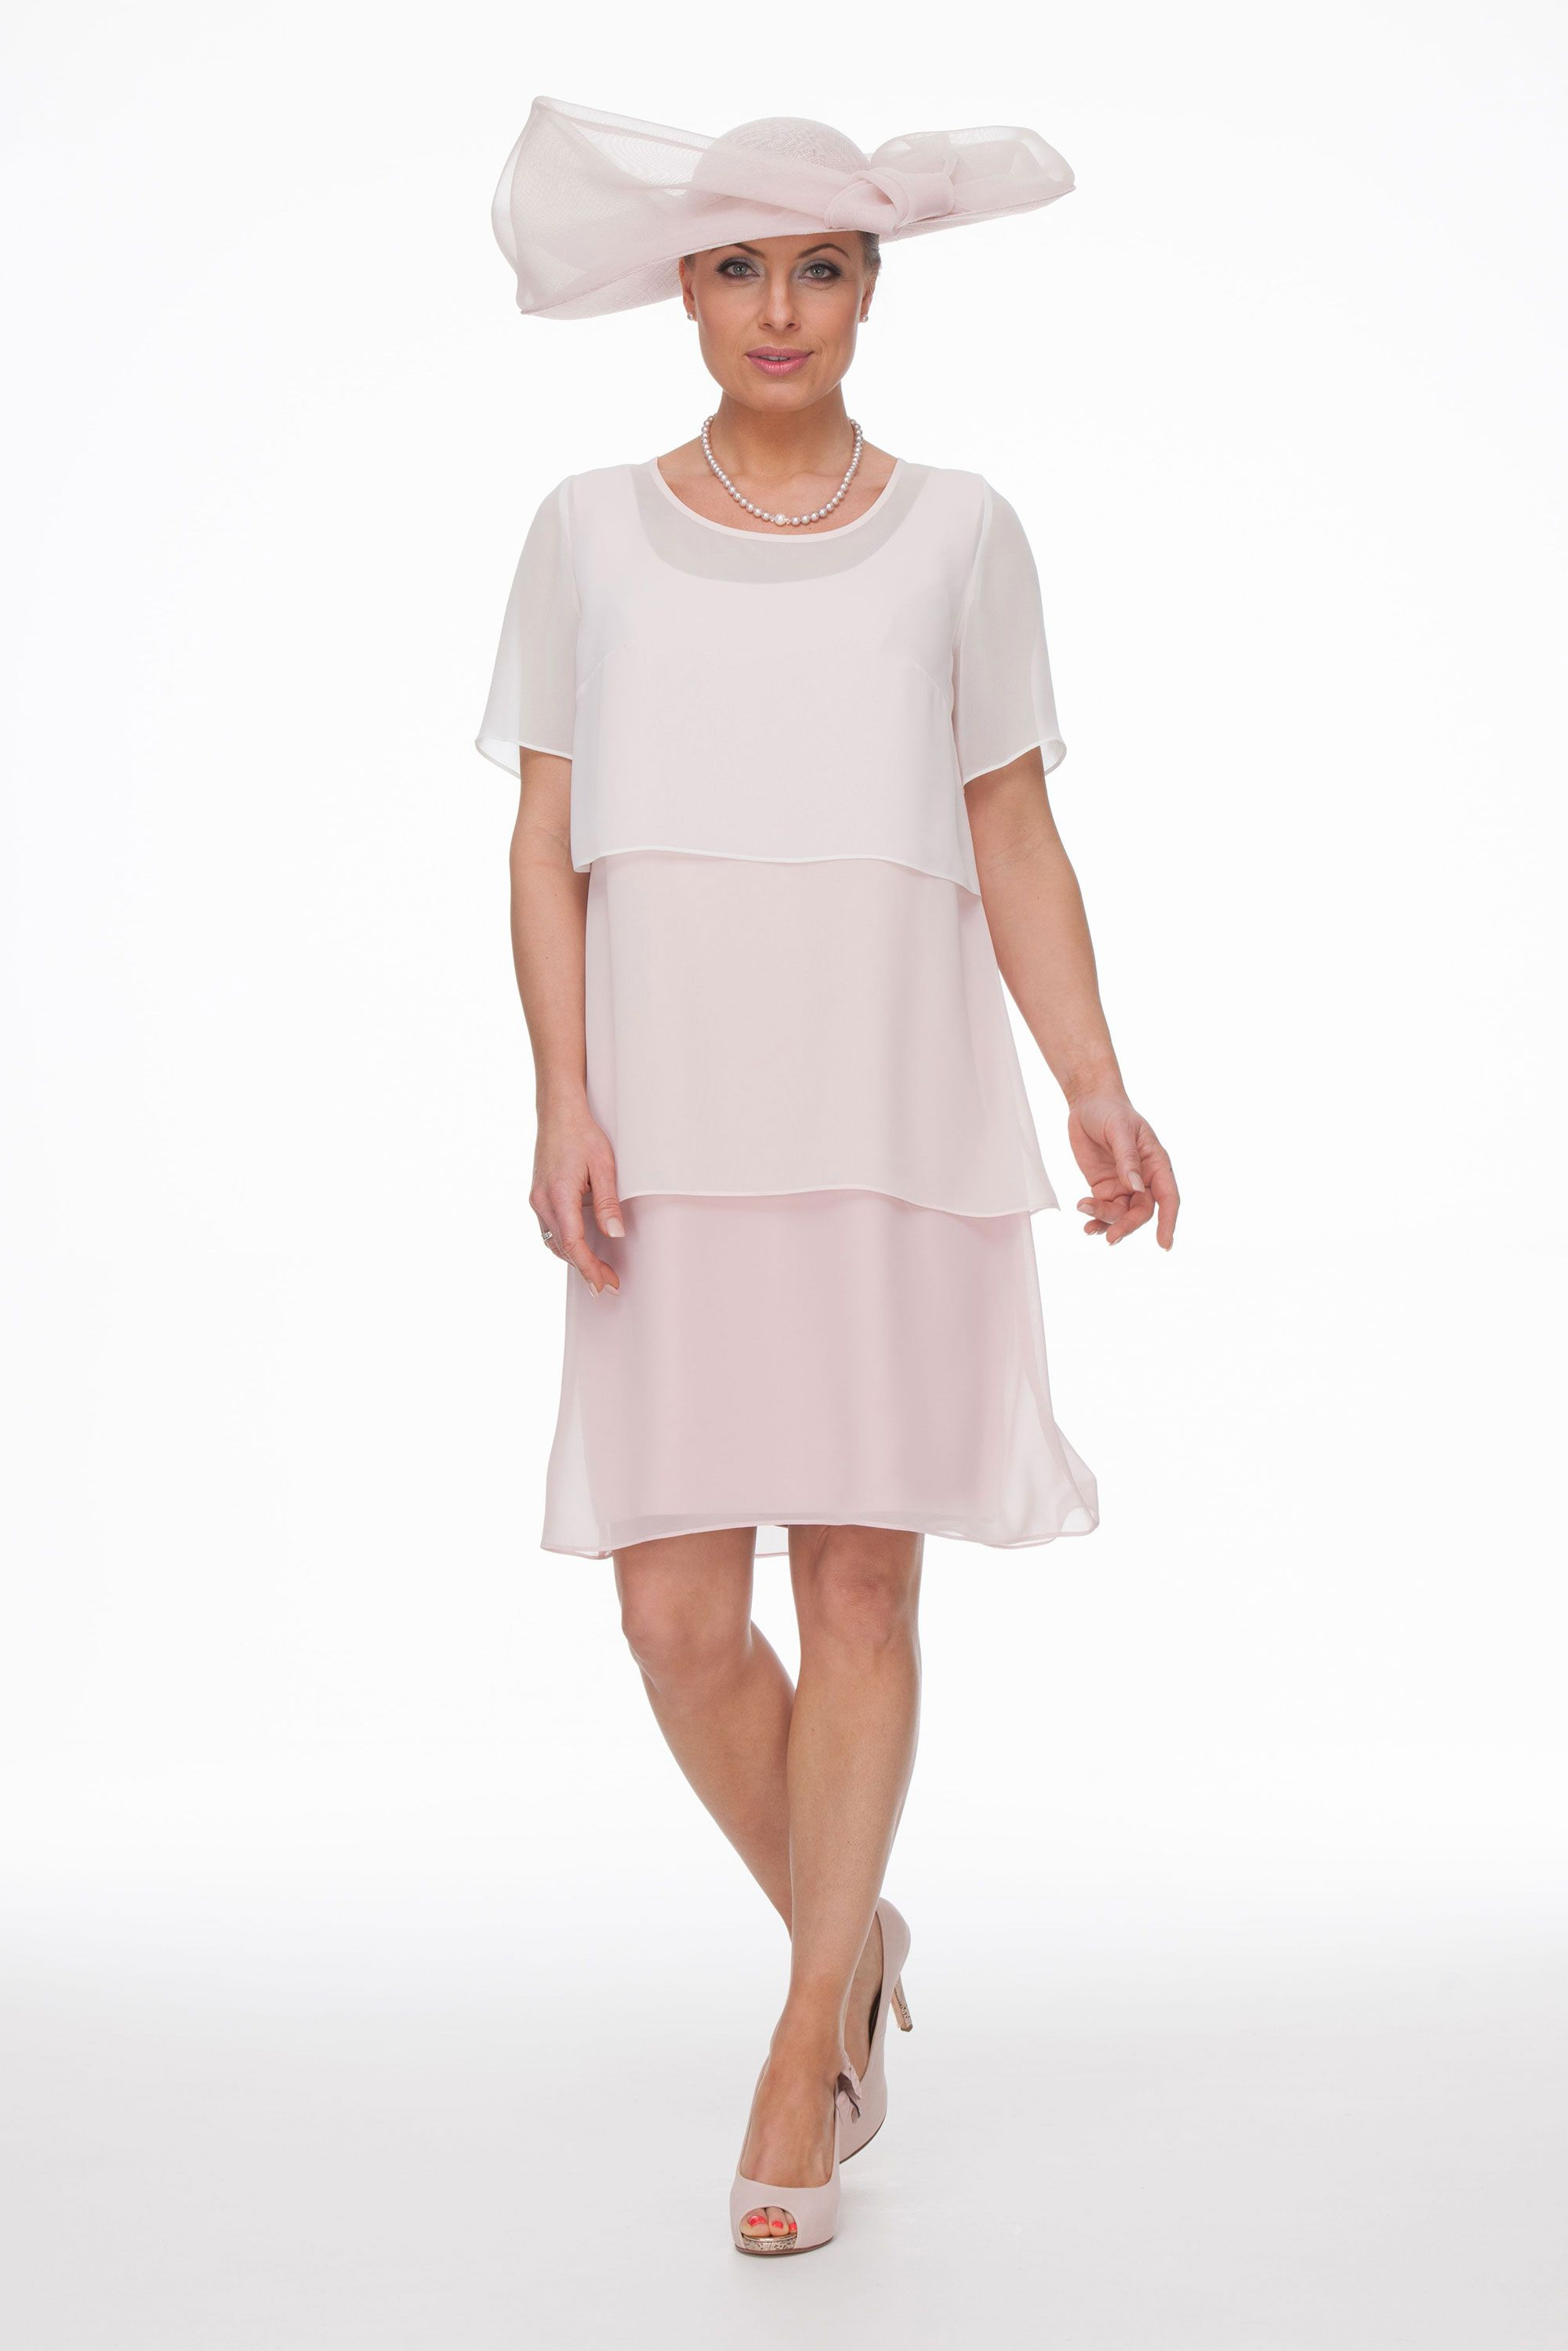 Pretty and floaty this layered chiffon dress is ideal for a relaxed summer  wedding. The short sleeve top comes off and the dress can be worn  sleeveless or ... fecf64bce0